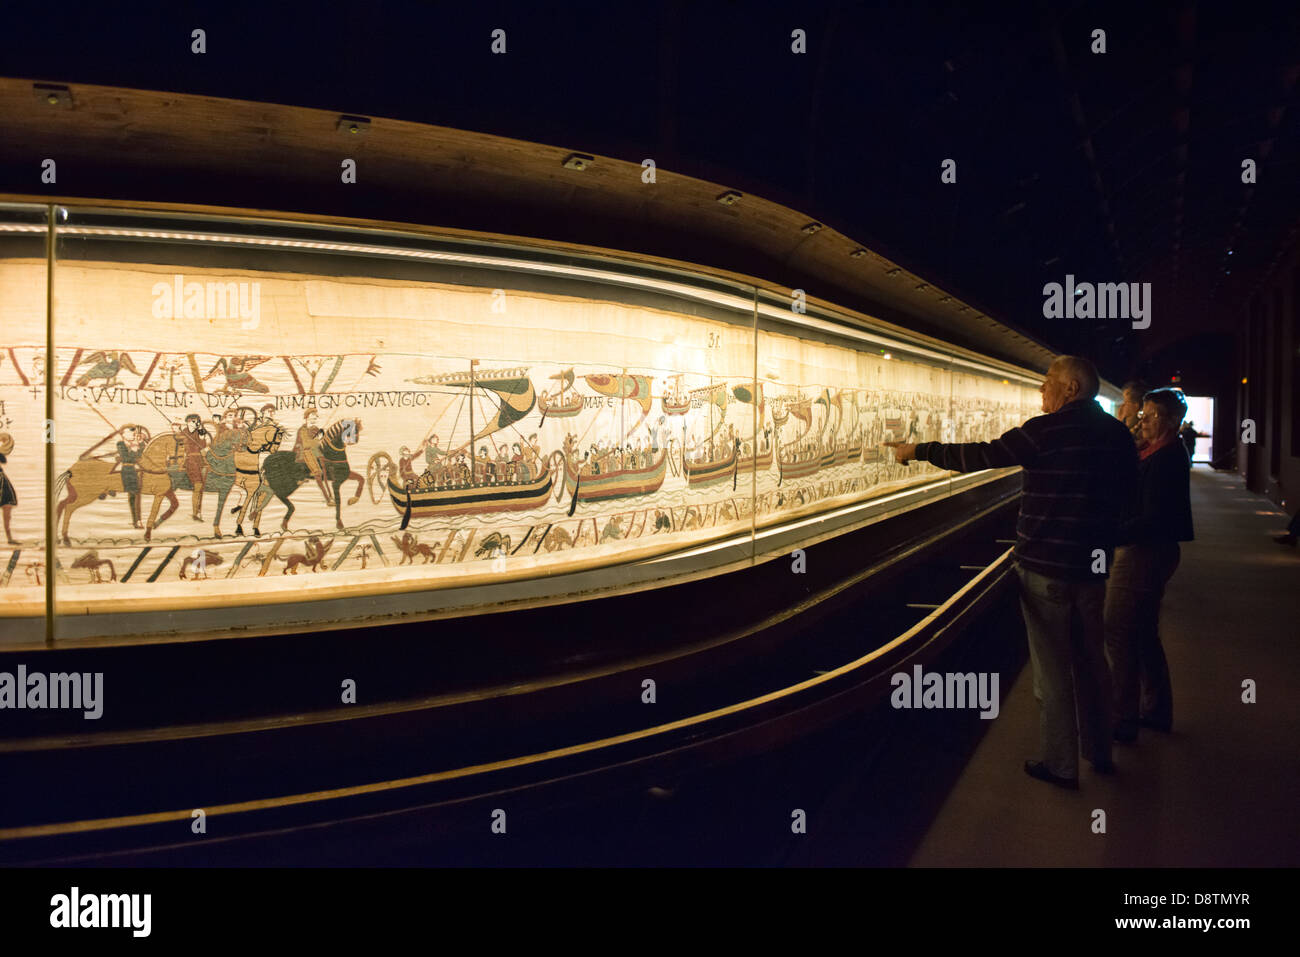 Teppich Von Bayeux Generator The Bayeux Tapestry French Stockfotos And The Bayeux